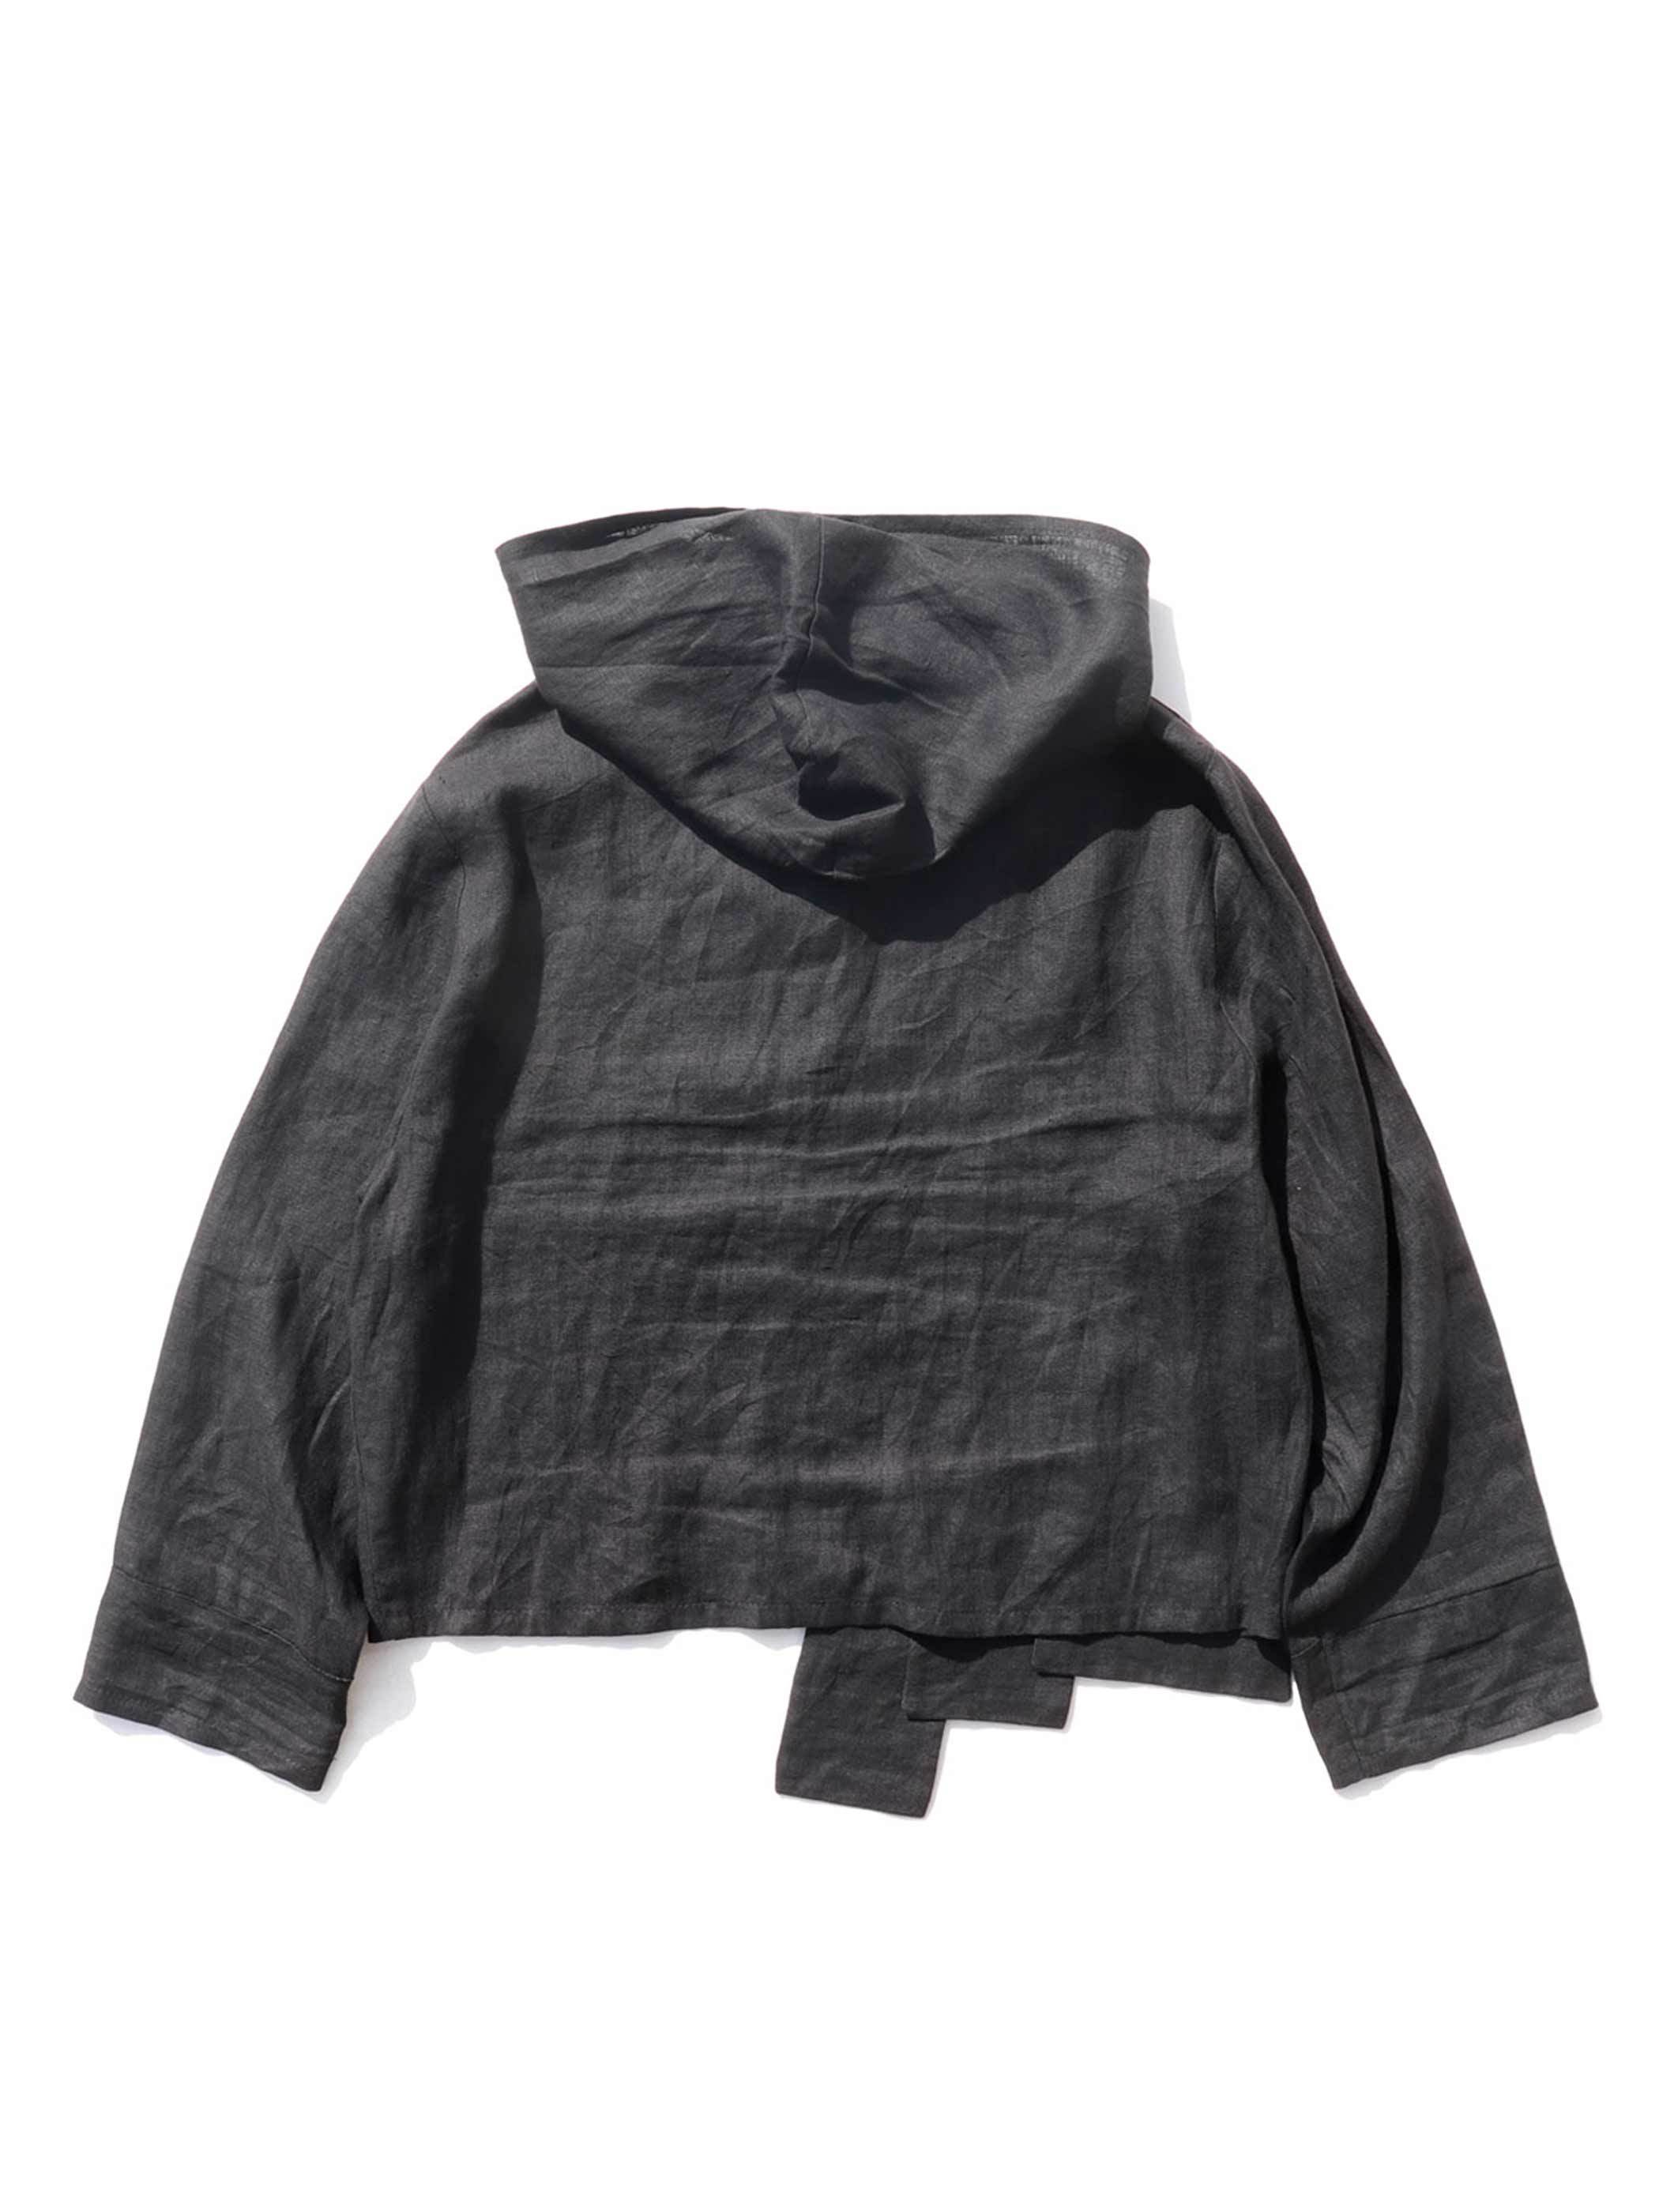 UNKNOWN Black French Linen Hooded Jacket [About Women's L]